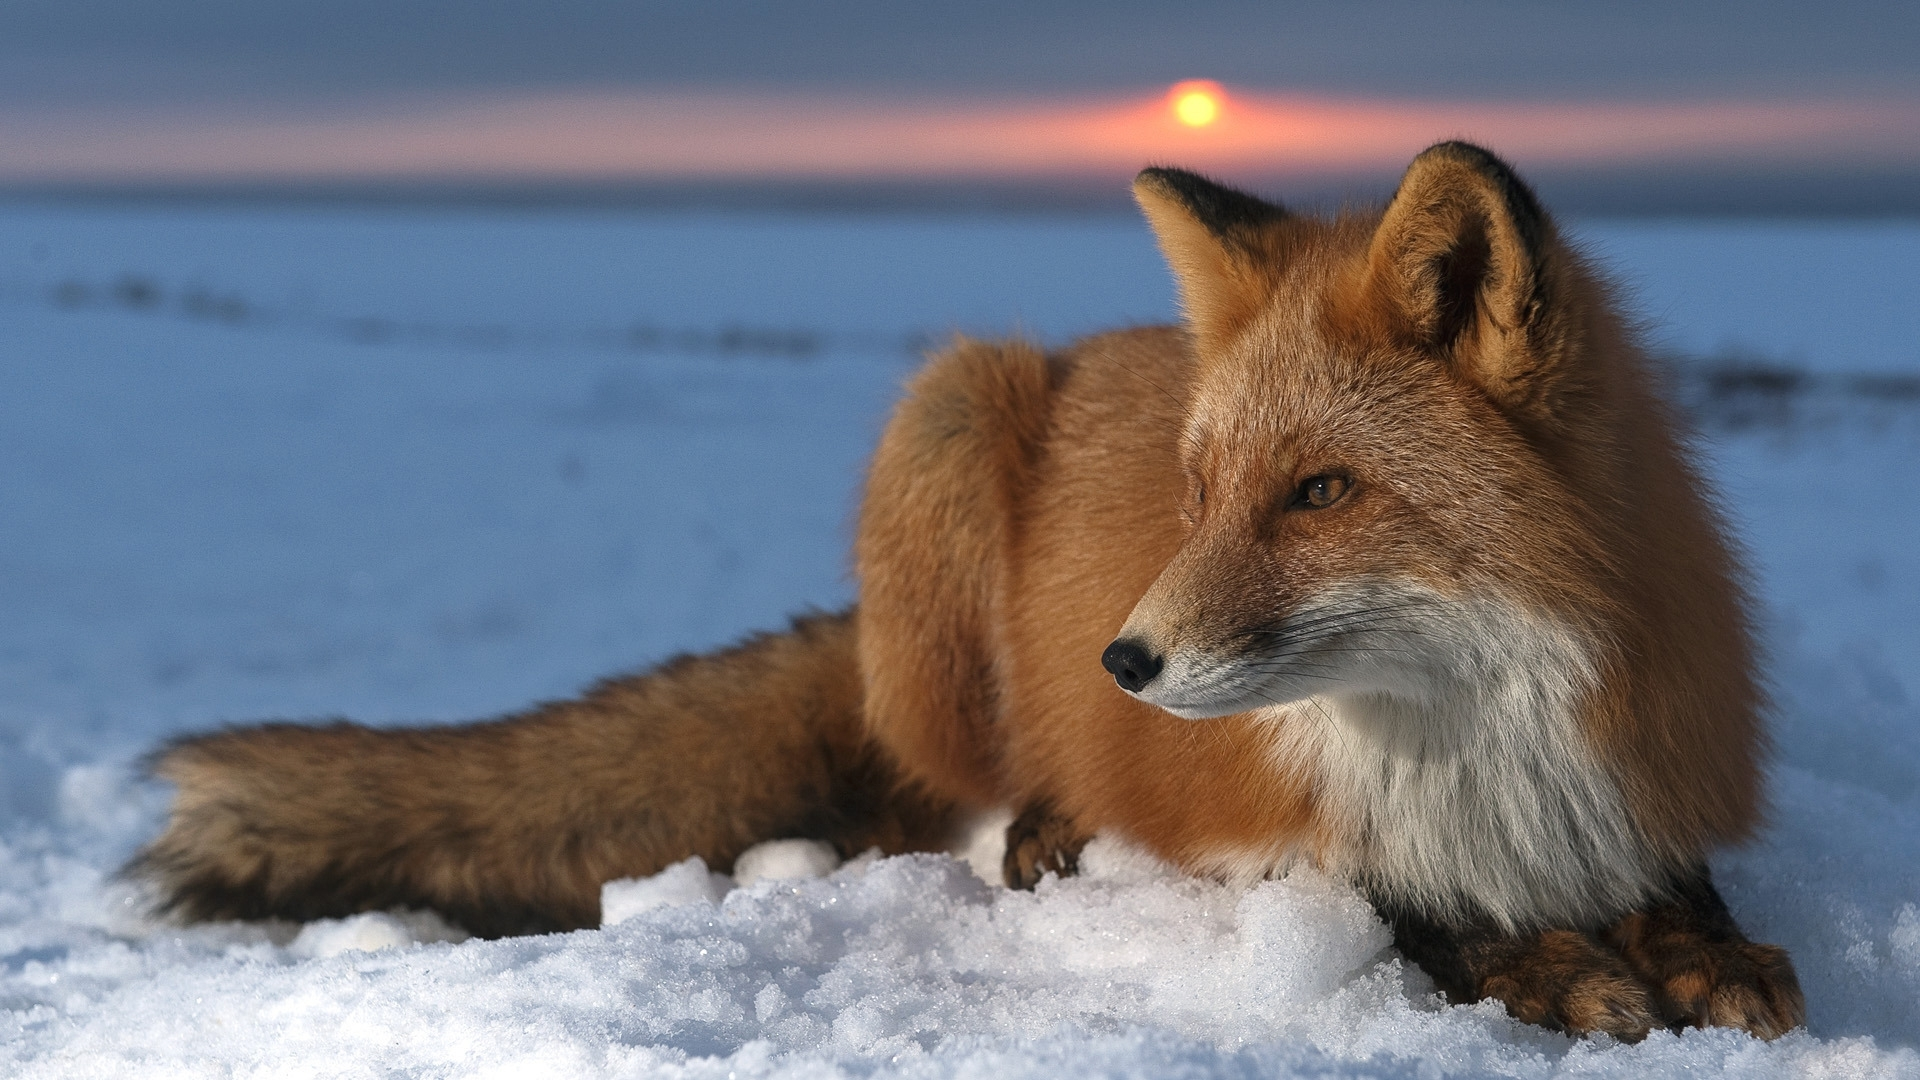 31366 download wallpaper Animals, Fox screensavers and pictures for free